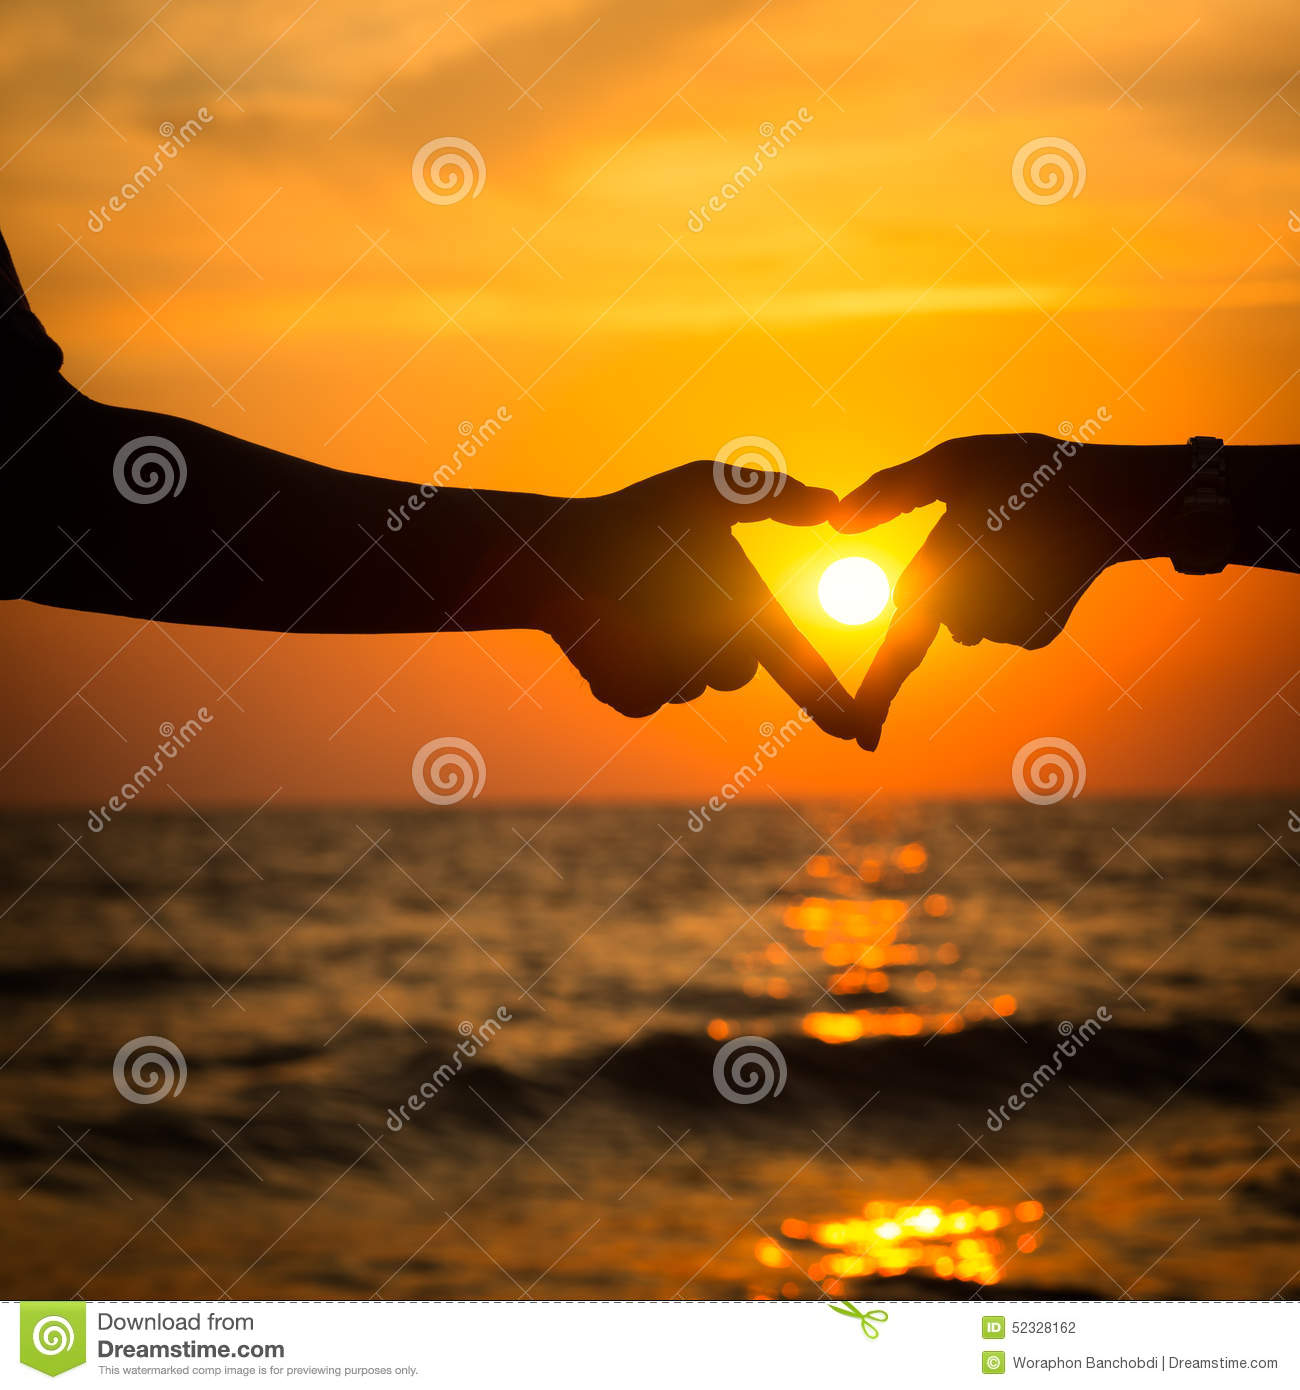 Heart Hand Of Couple Stock Photo. Image Of Concept, Beach